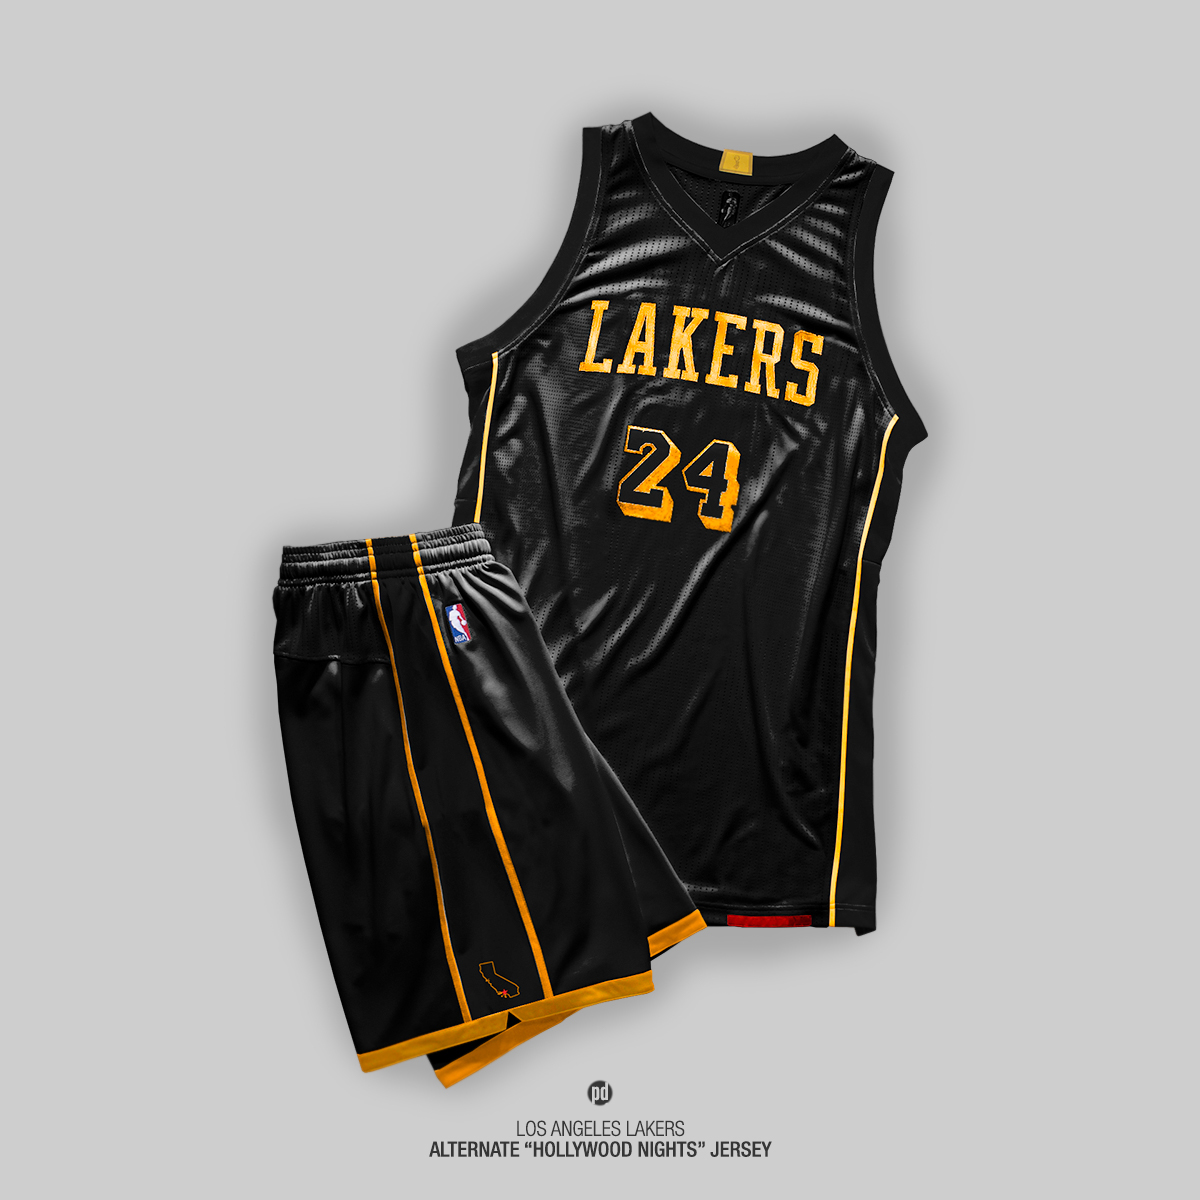 0e1bac30f02 ... swingman jersey mans large large eb0e7 eee9a  purchase jersey los  angeles lakers rebrand project c5cd3 3616d